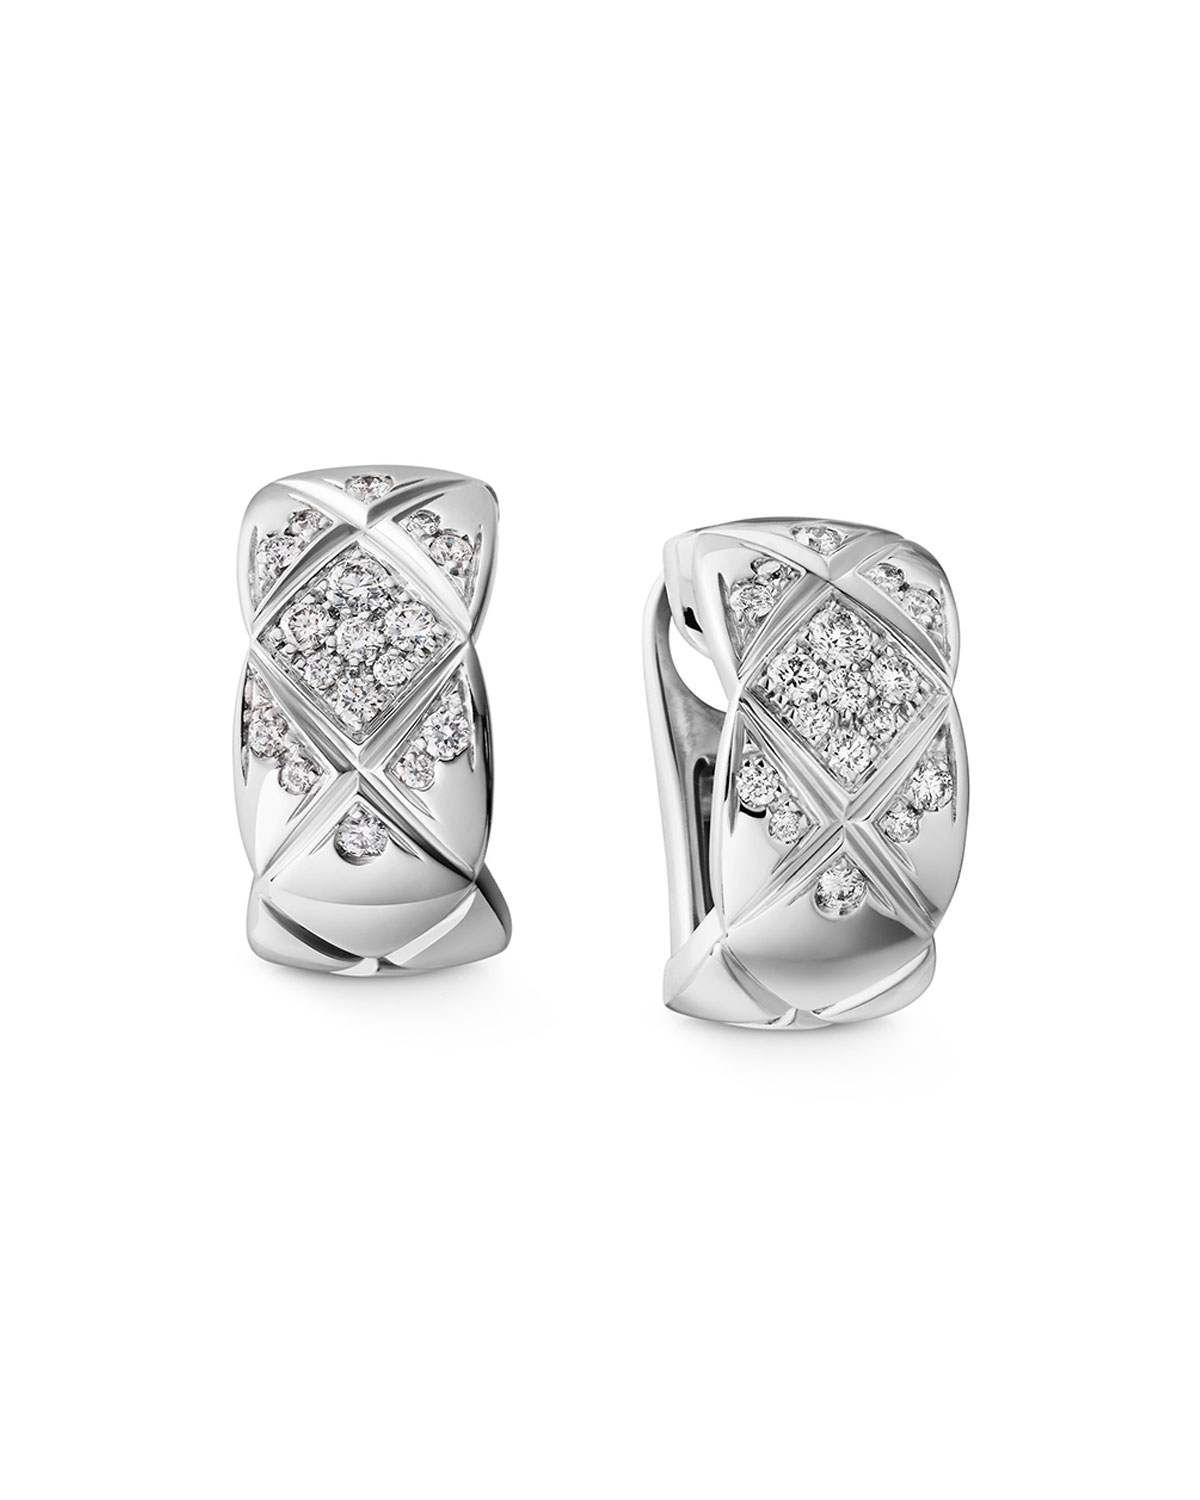 Chanel Coco Crush Earrings In 18k White Gold Diamonds